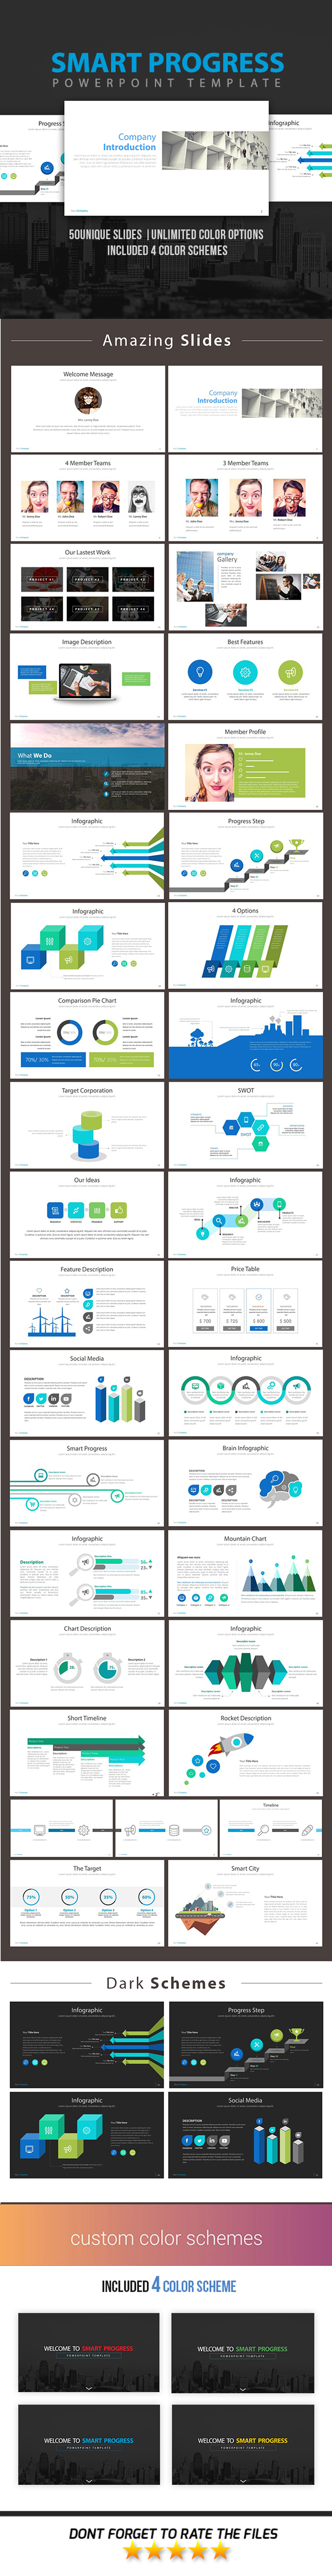 smart powerpoint templates choice image - templates example free, Powerpoint templates